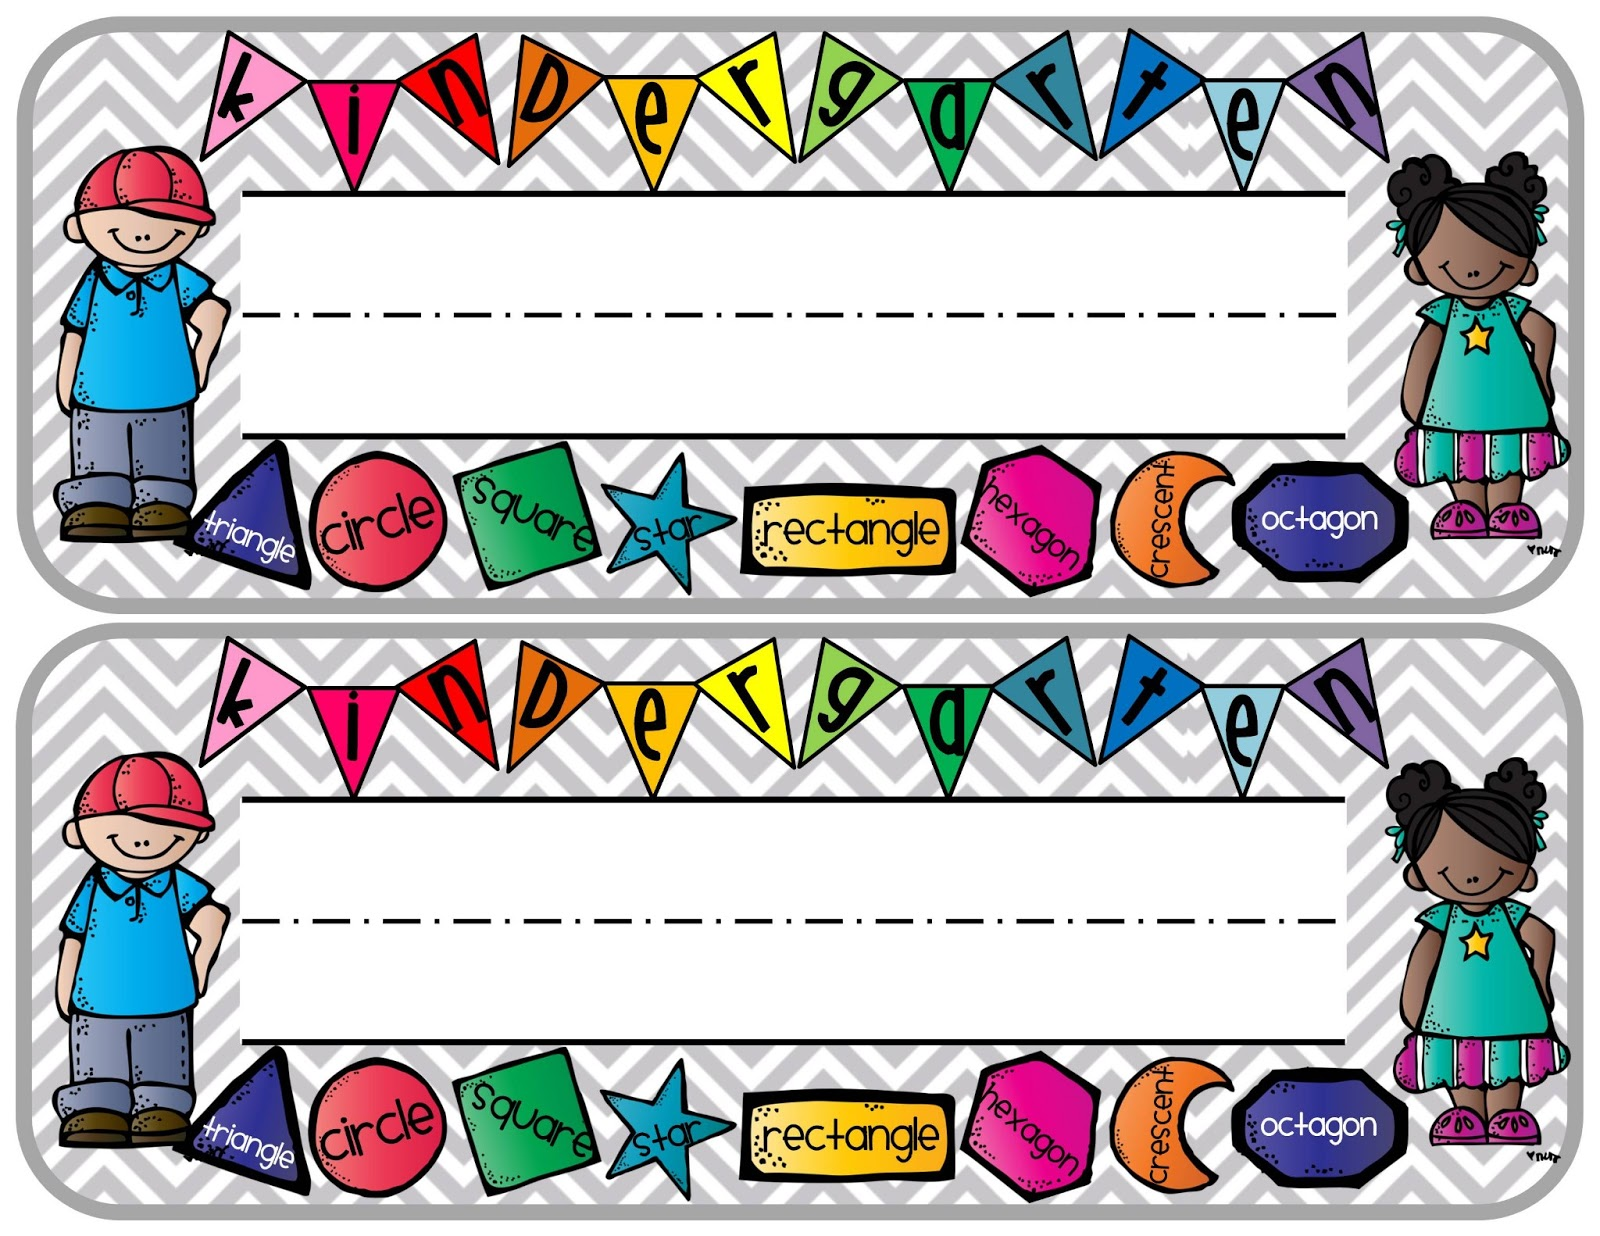 Elementary organization april 2013 for Preschool name tag templates